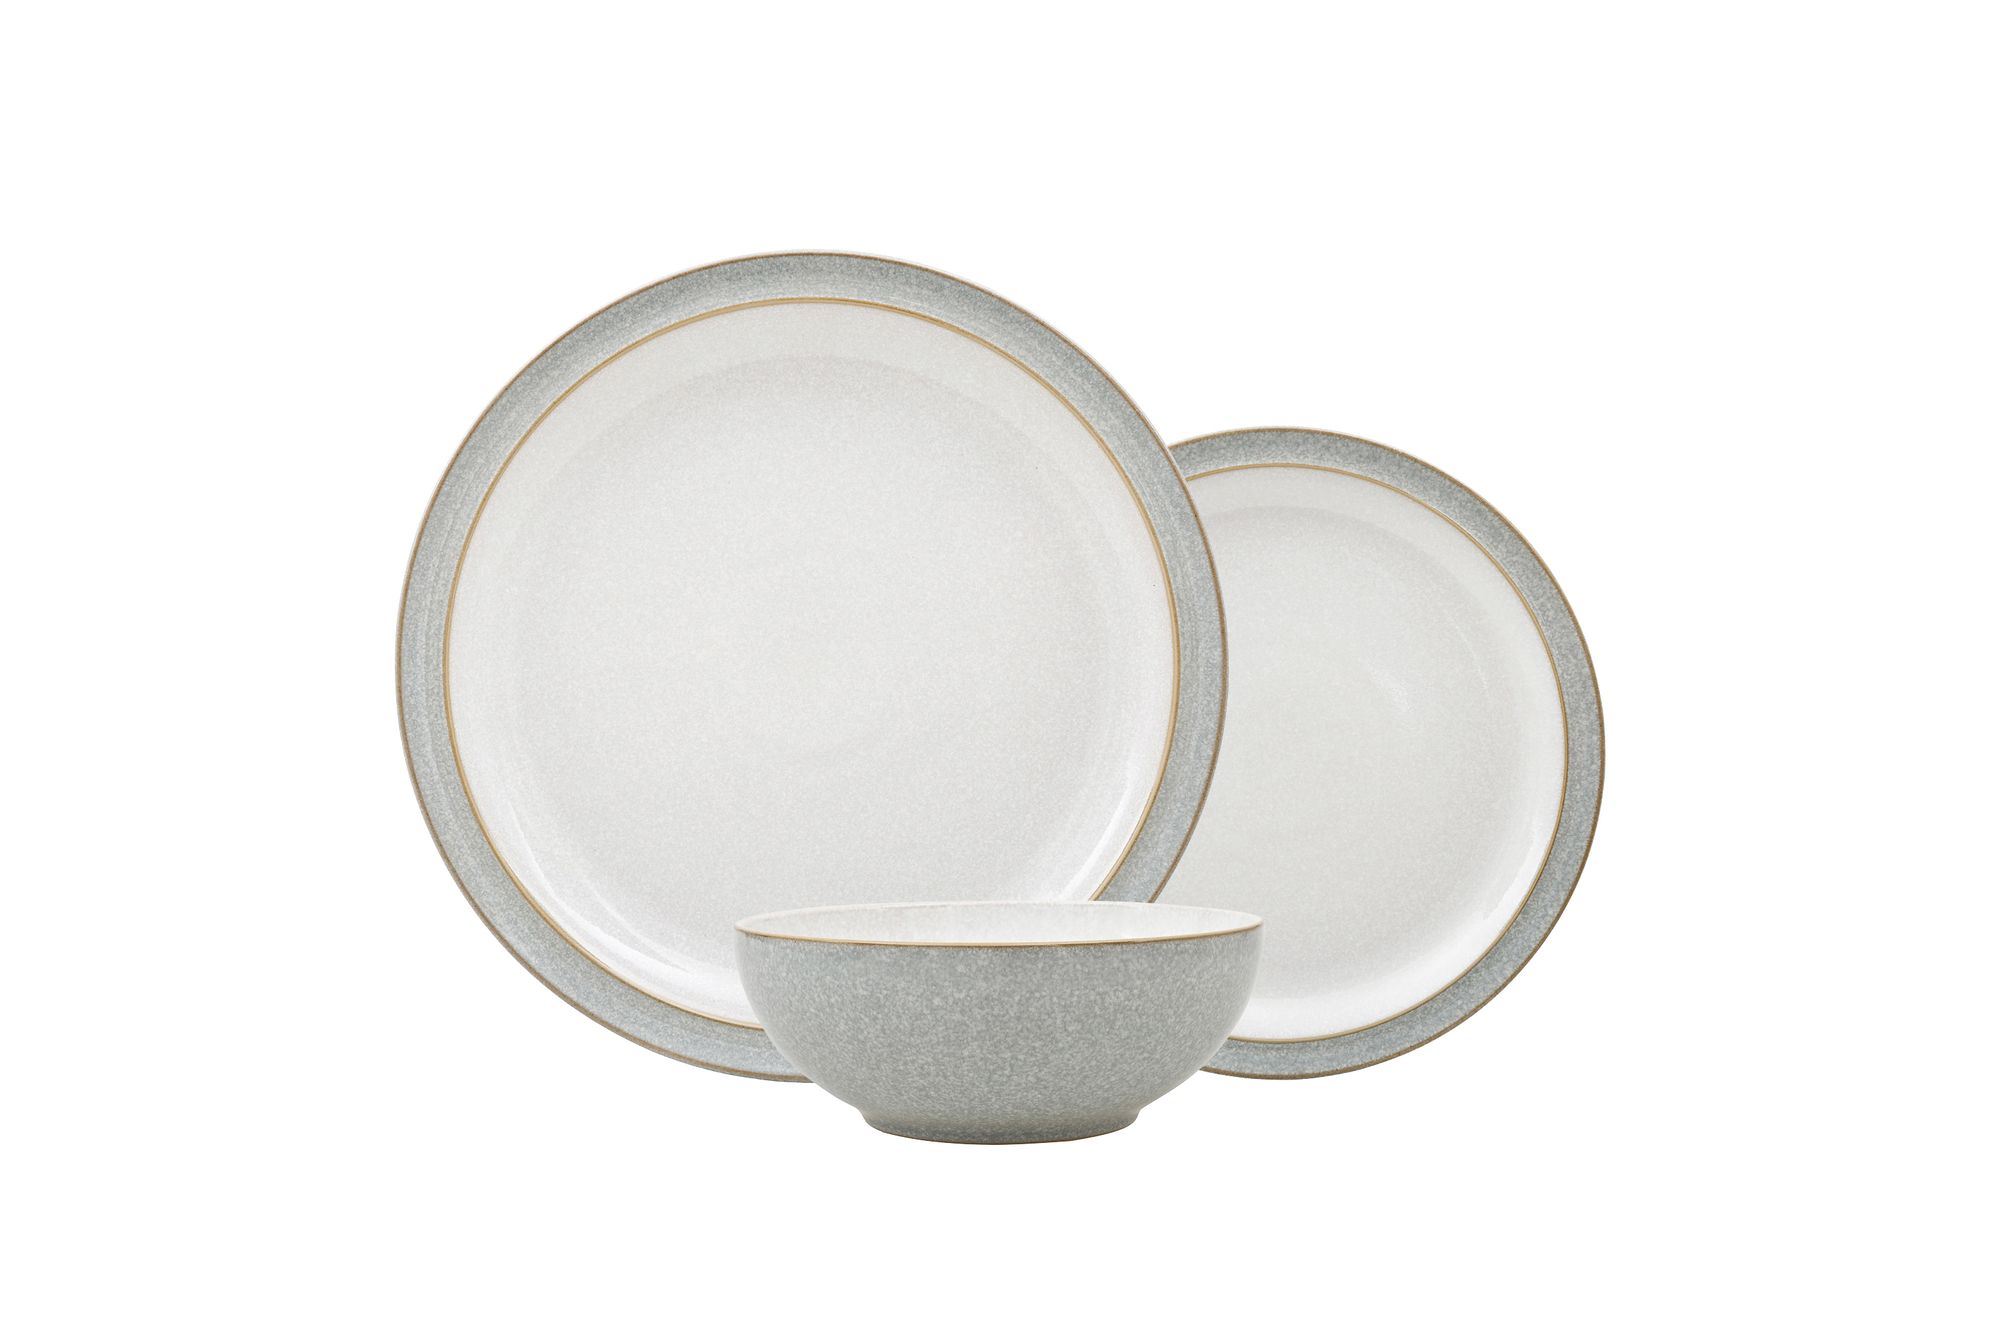 Denby Elements - Light Grey 12 Piece Set 4 x 26.5cm Dinner Plate, 4 x22cm Side Plate & 4 x 17cm Cereal Bowl thumb 1